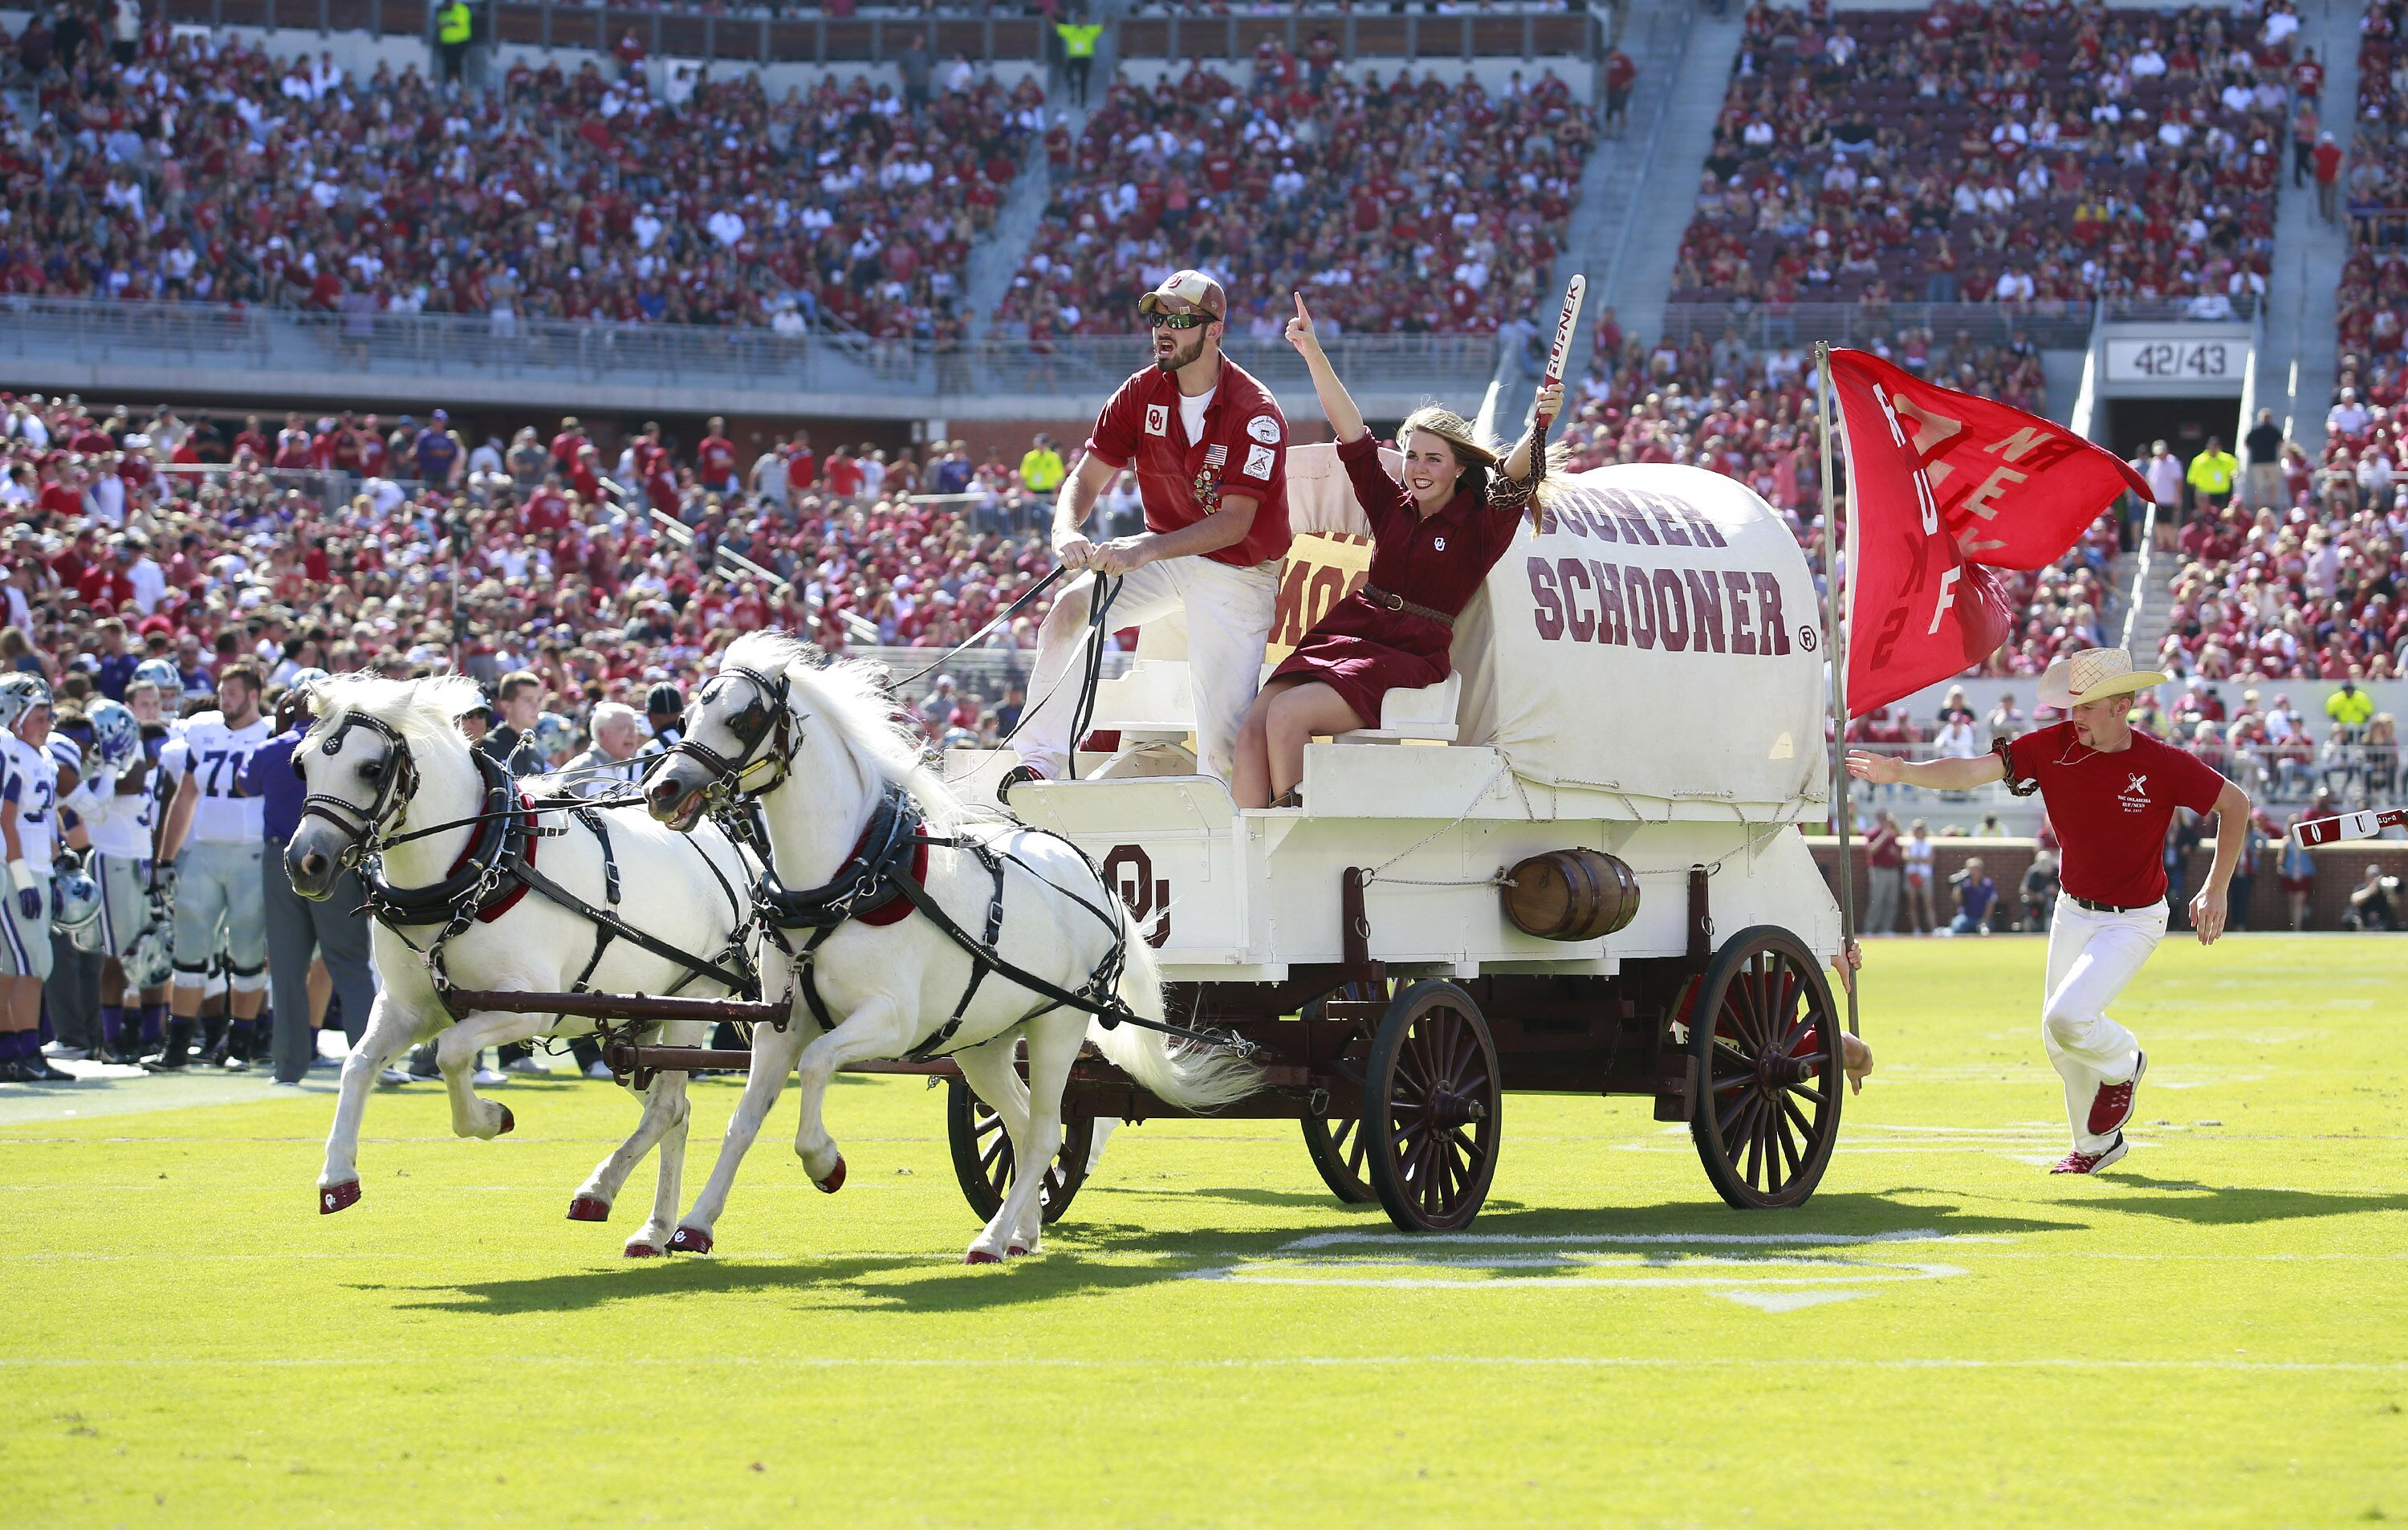 Oklahoma football: Sooners take over game in 2nd half for ...